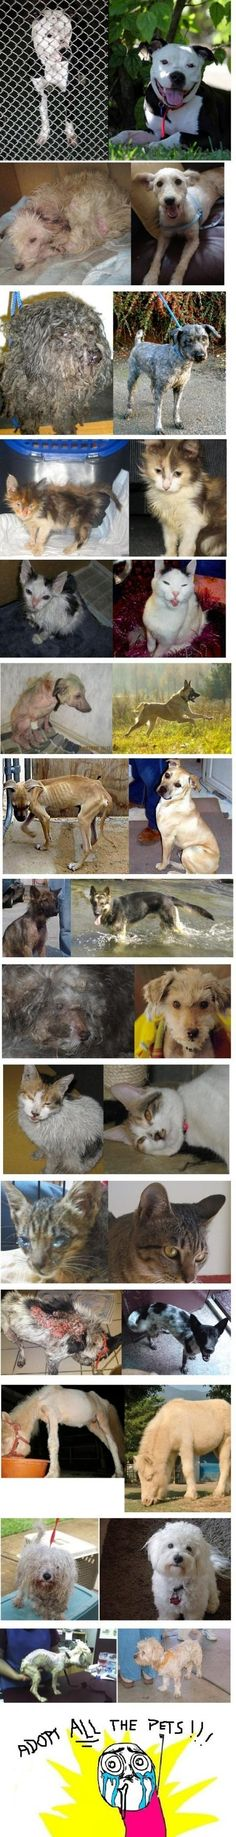 #rescue #adopt - before & after rescued pets